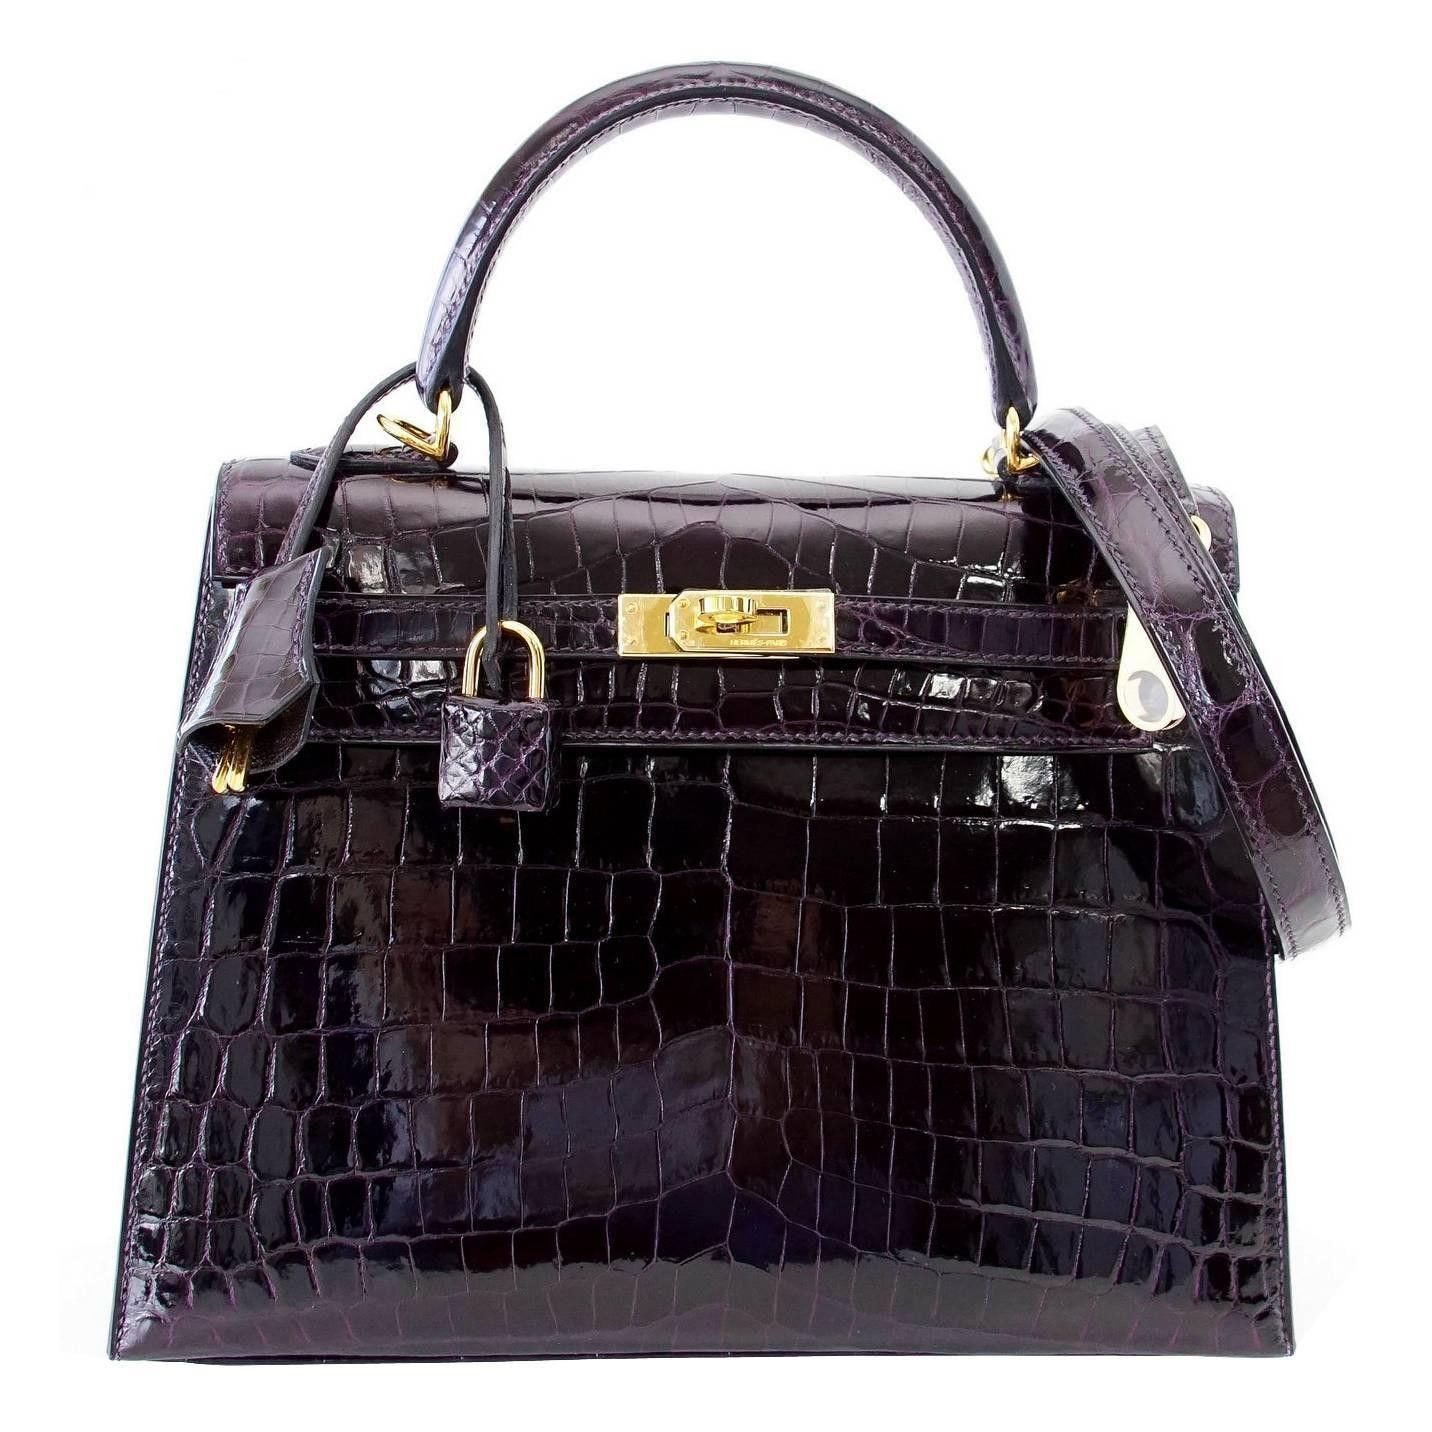 ec8616acf2 Hermes Kelly 25 Bag Sellier Crocodile Prunoir Gold Hardware in 2019 ...